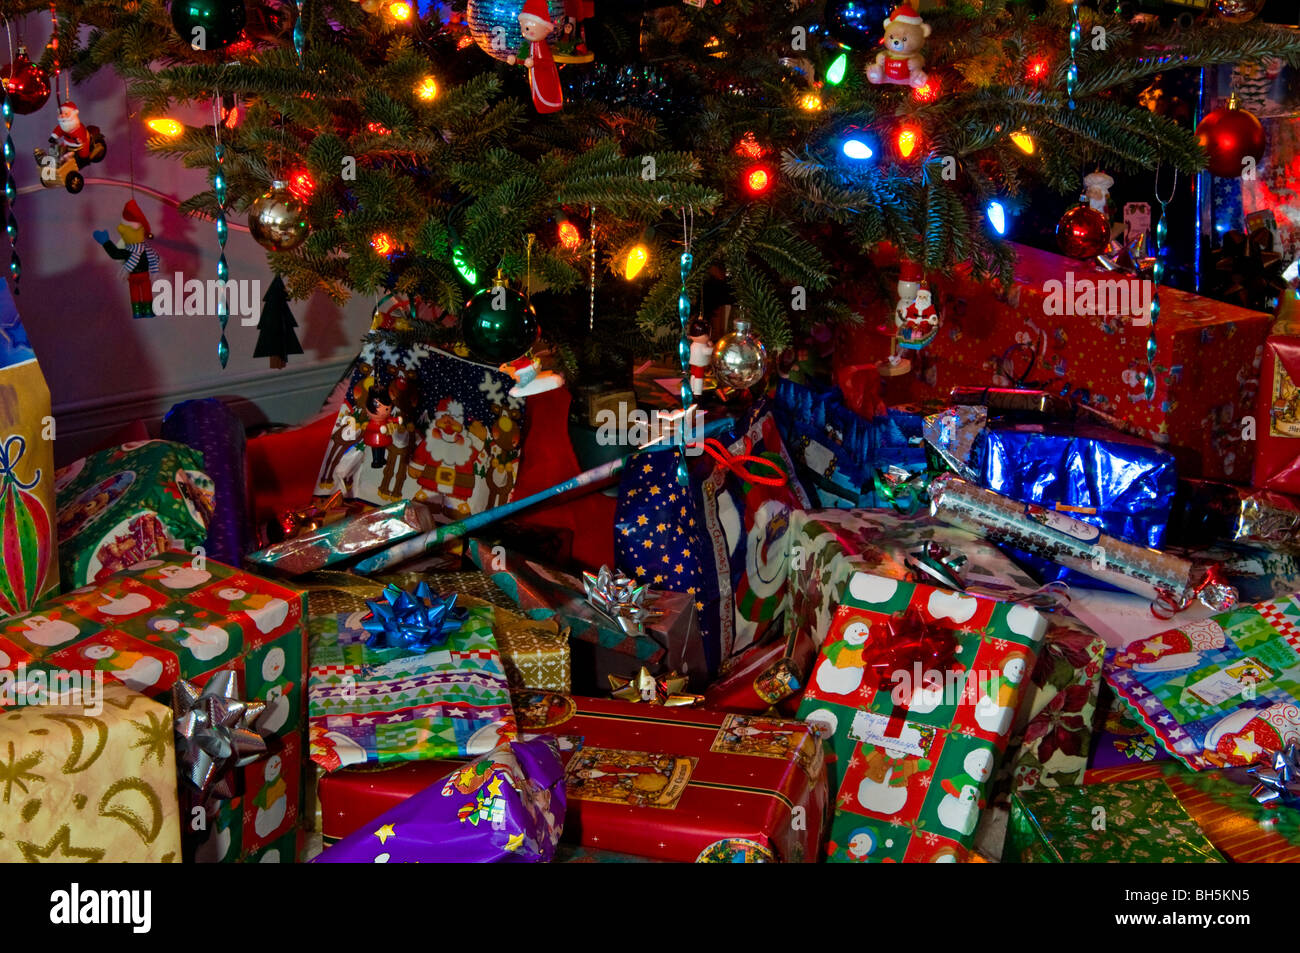 Christmas presents and gifts under a Christmas tree on Christmas ...